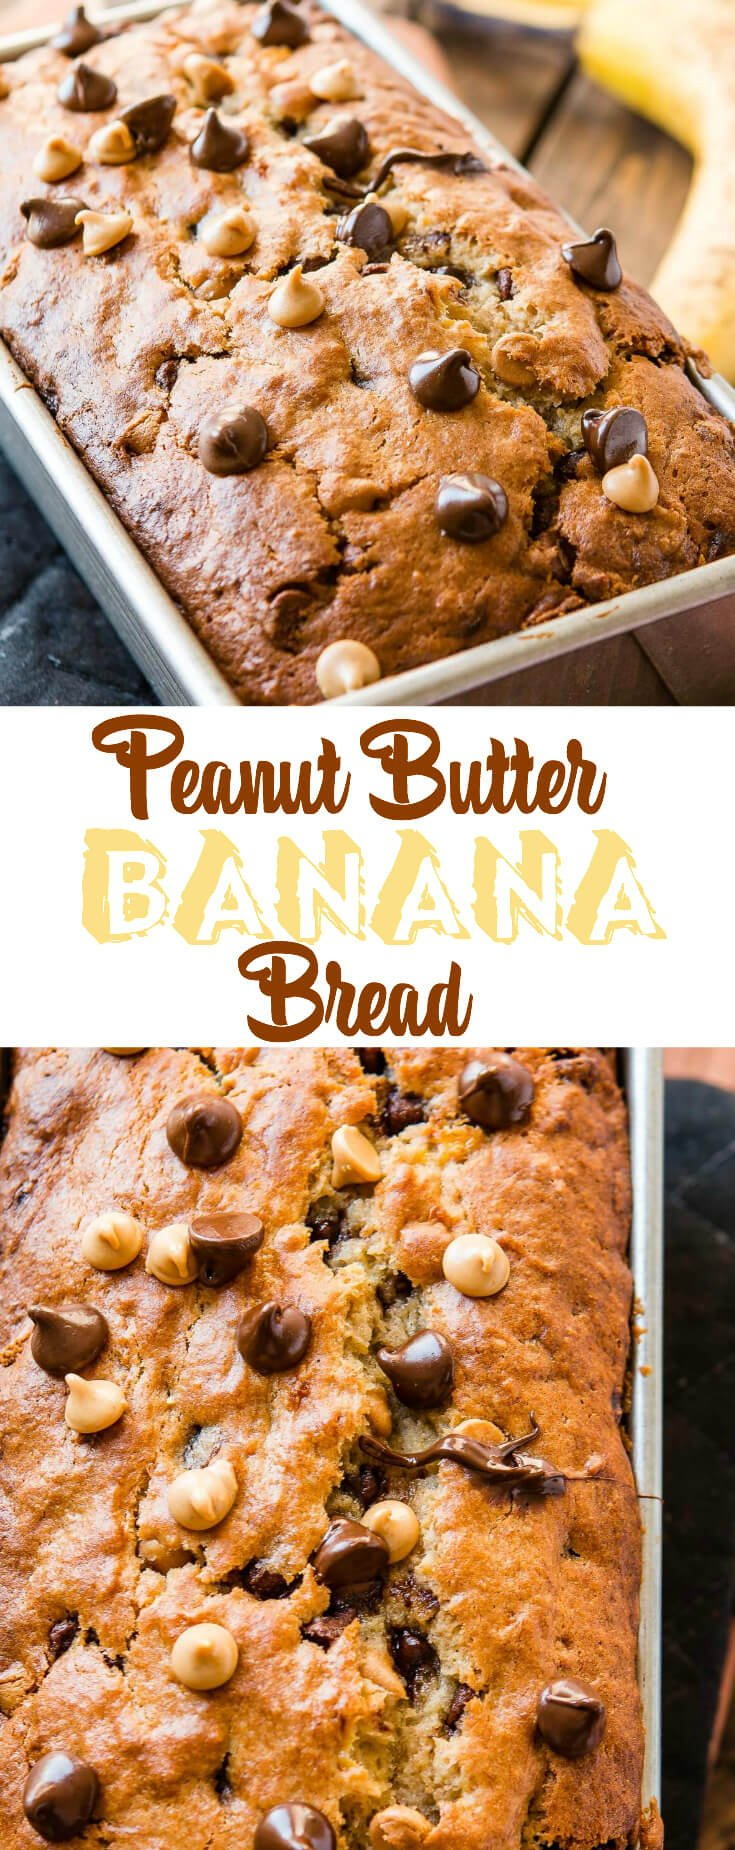 This peanut butter banana bread filled with little morsels of peanut butter and chocolate is the perfect solution to over ripe bananas.